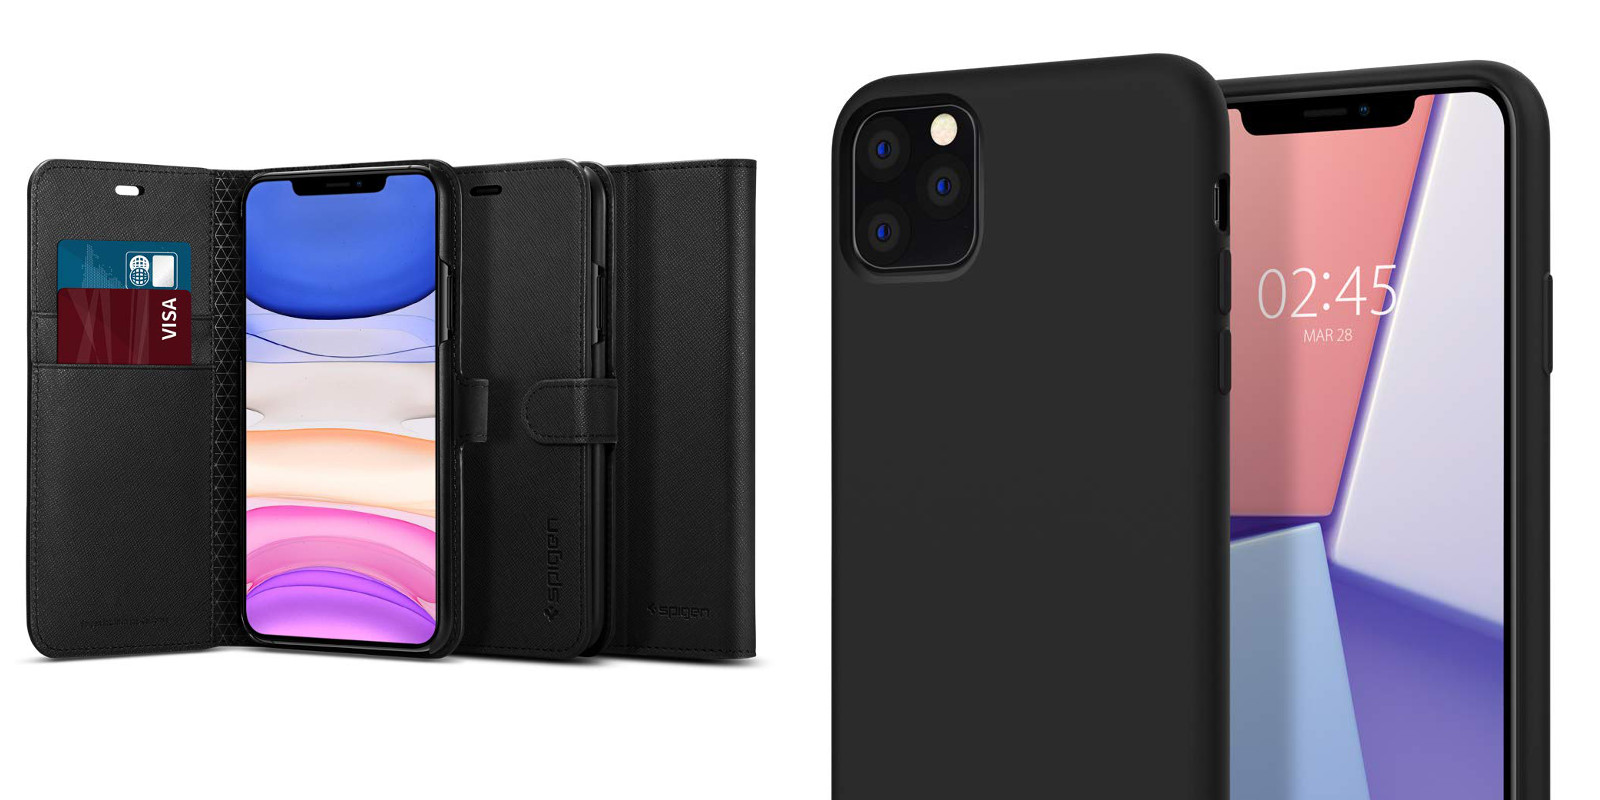 Spigen's new iPhone 11, Pro and Pro Max cases